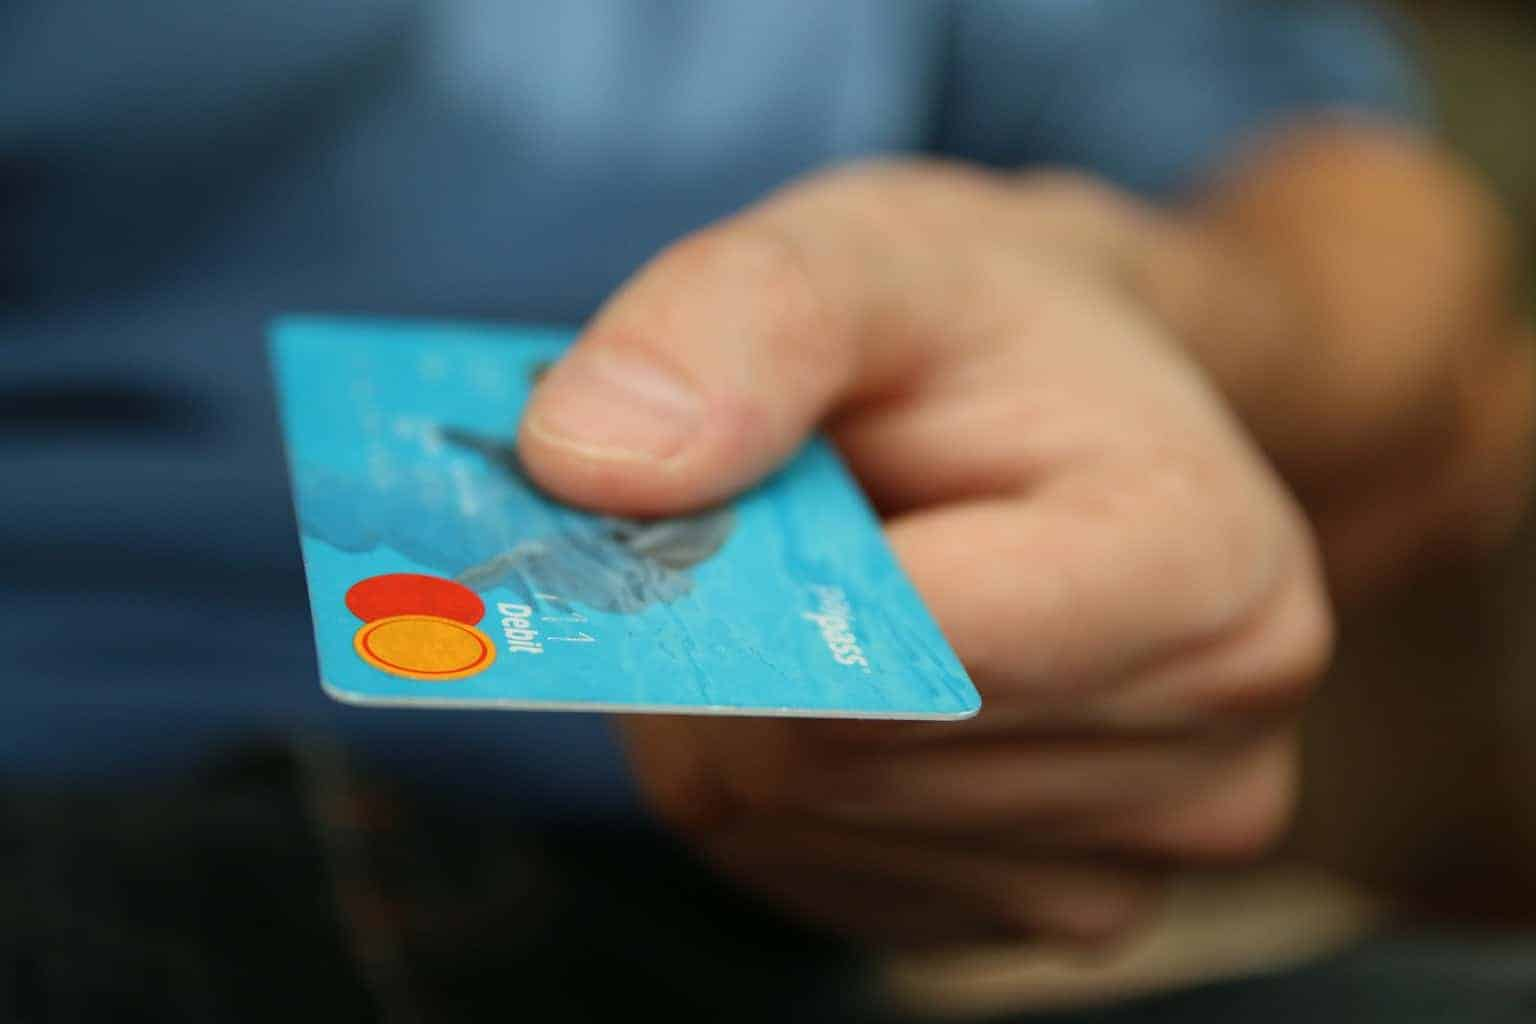 How to Manage Credit Card Spending and Improve your Credit Score